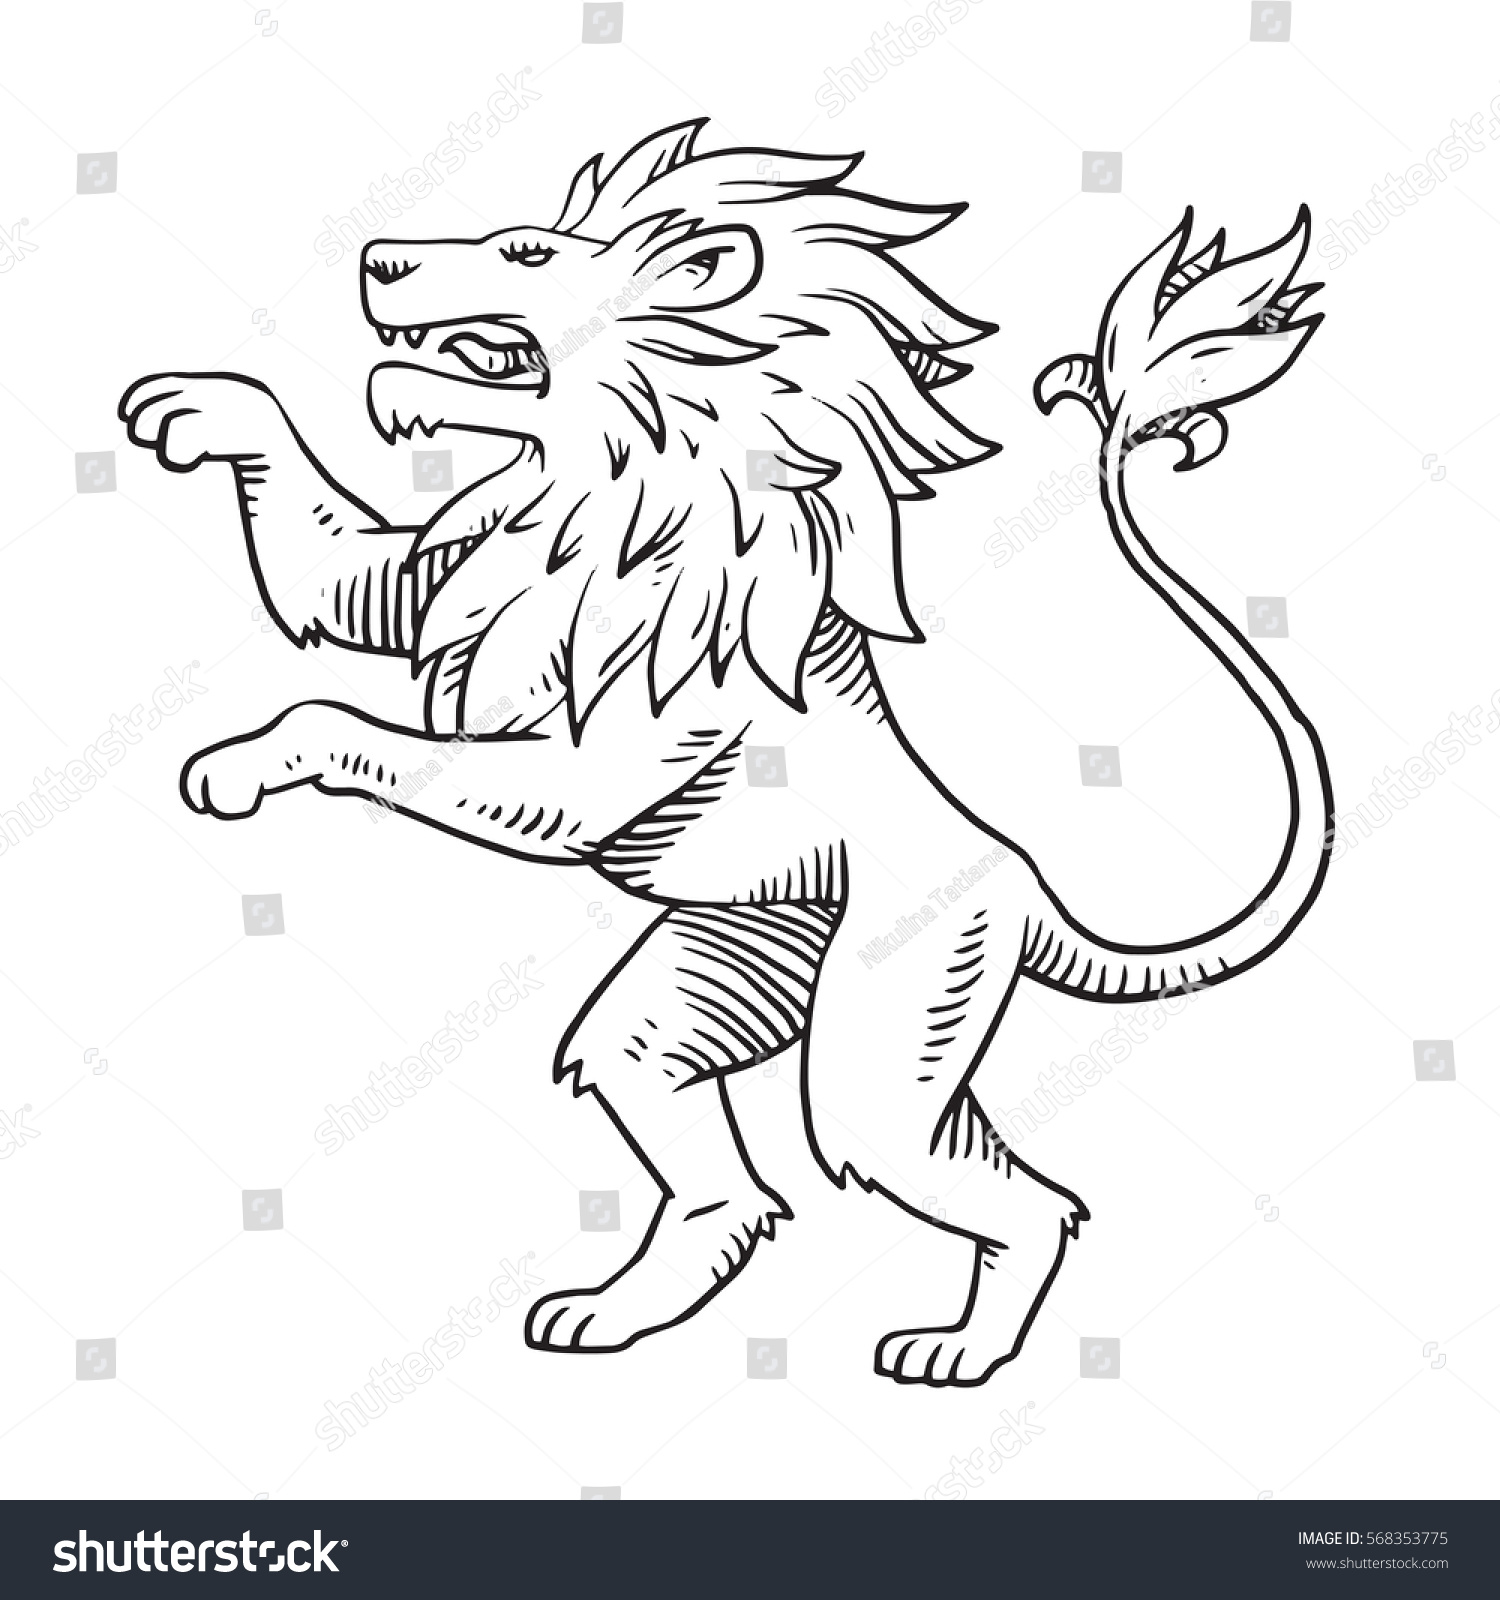 How to breed heraldic dragon - Vector Image Of Heraldic Lion With A Big Mane Standing On Its Hind Legs And Turn